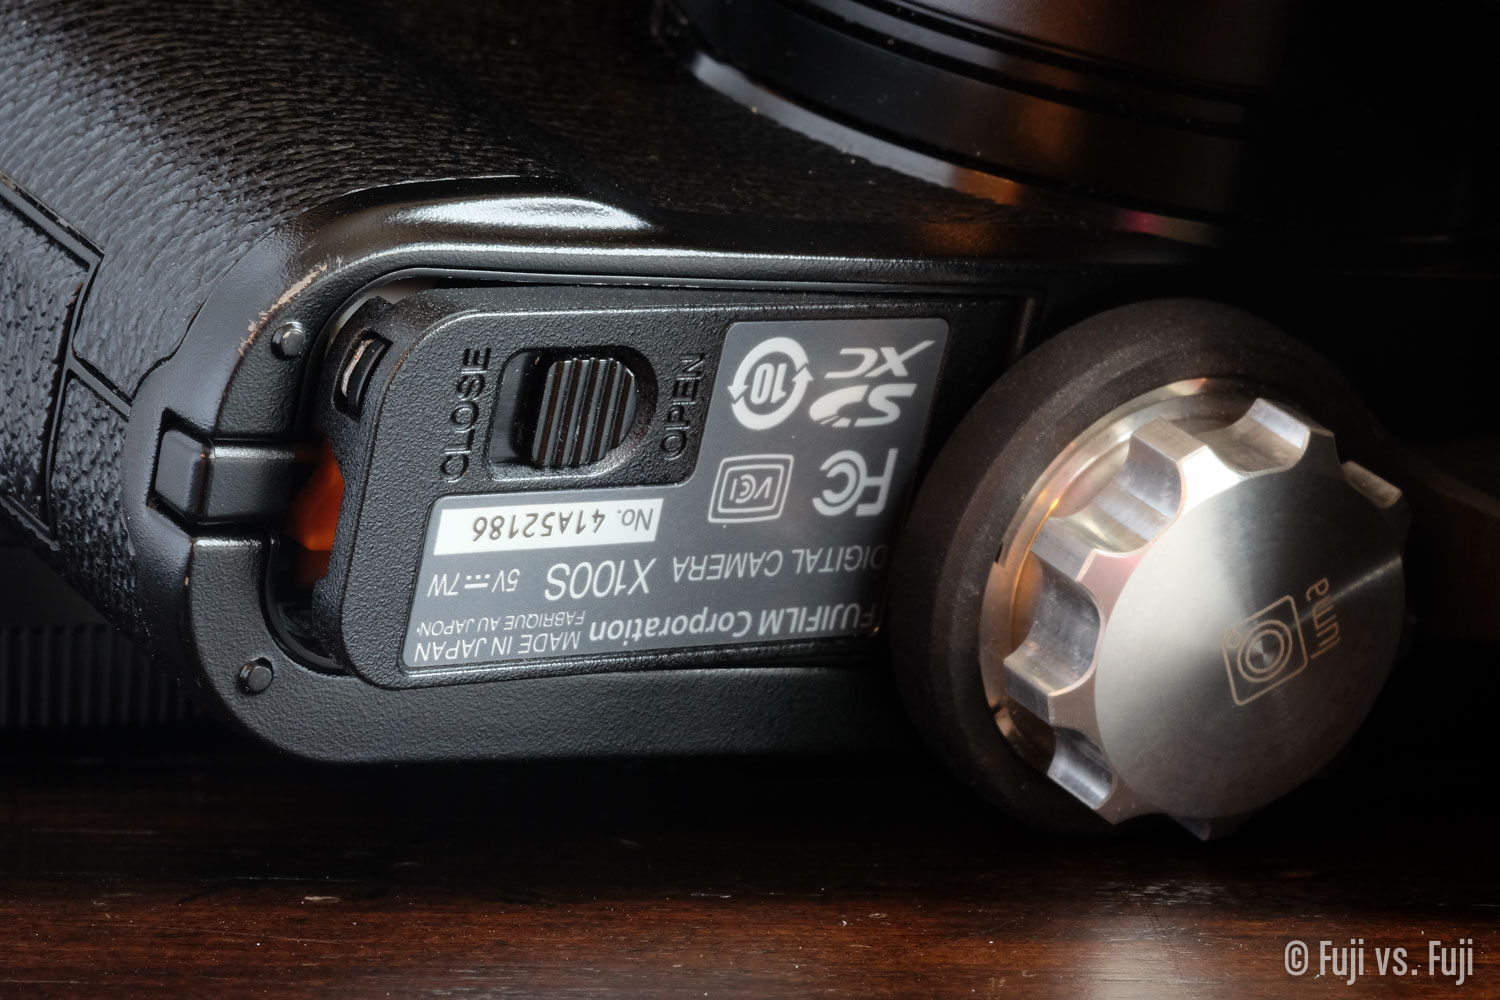 Battery door blocked by the Loop 3. The same thing happens with the x-T1, or X-E bodies.